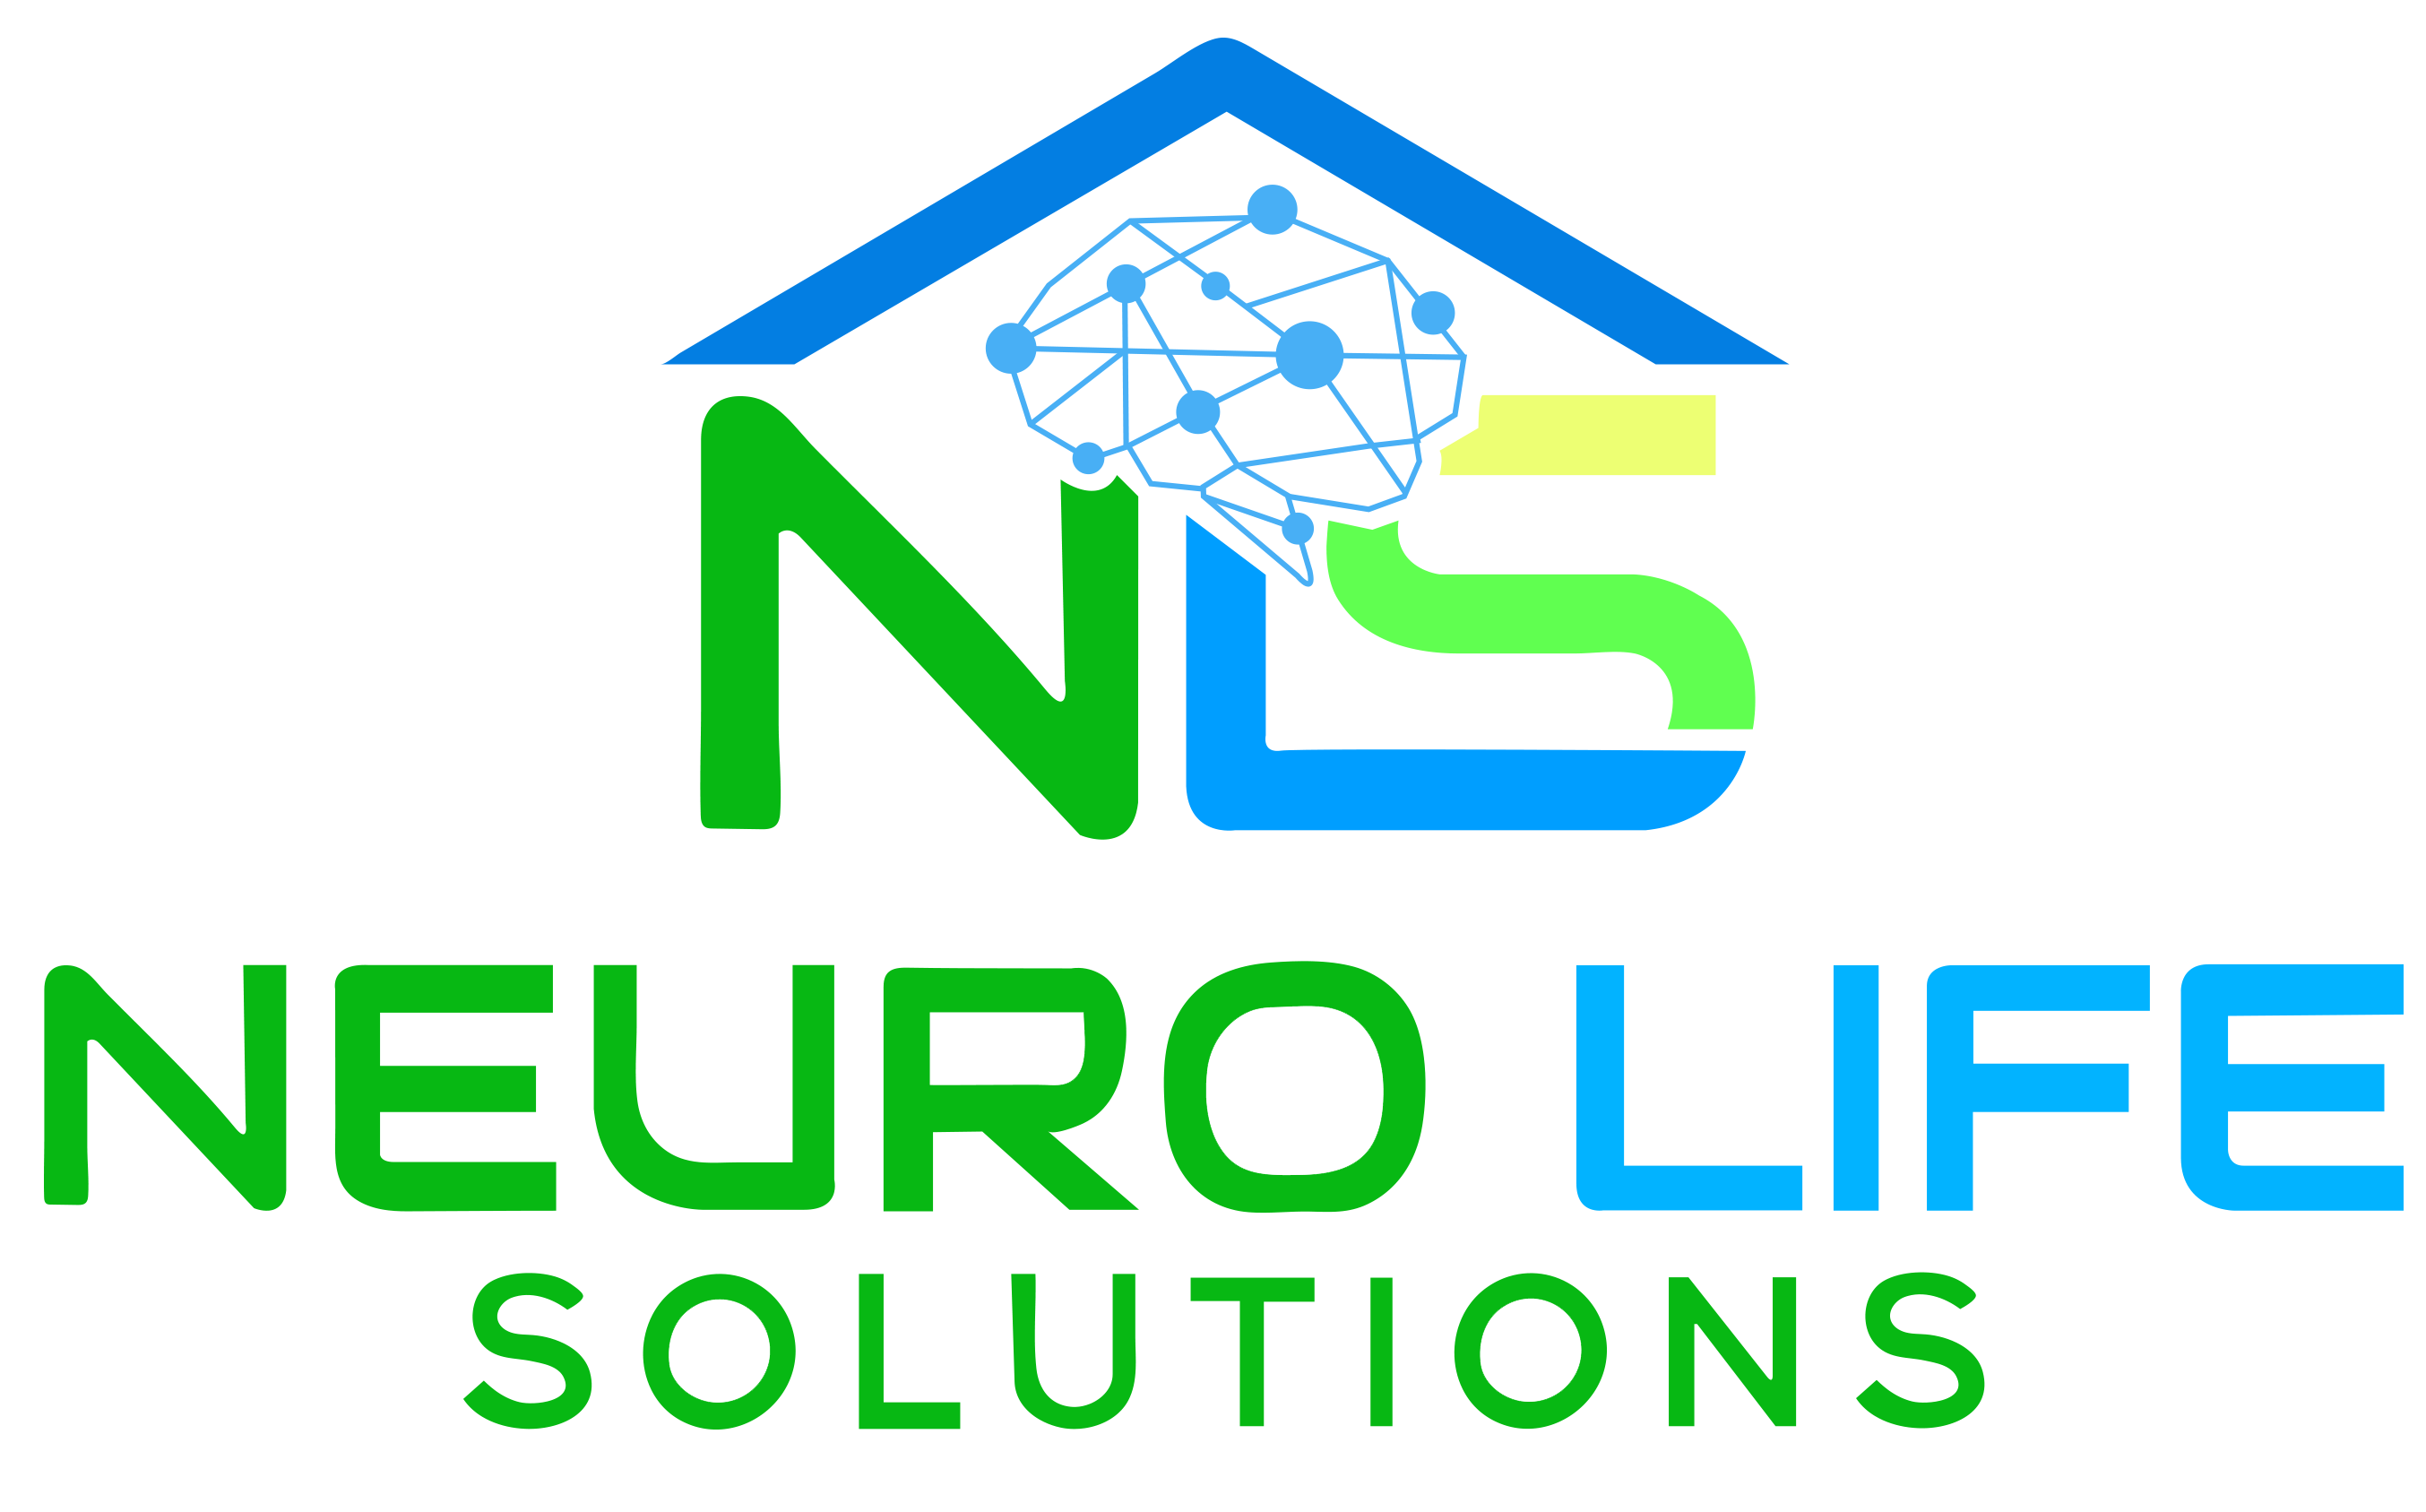 Neuro Life Solutions